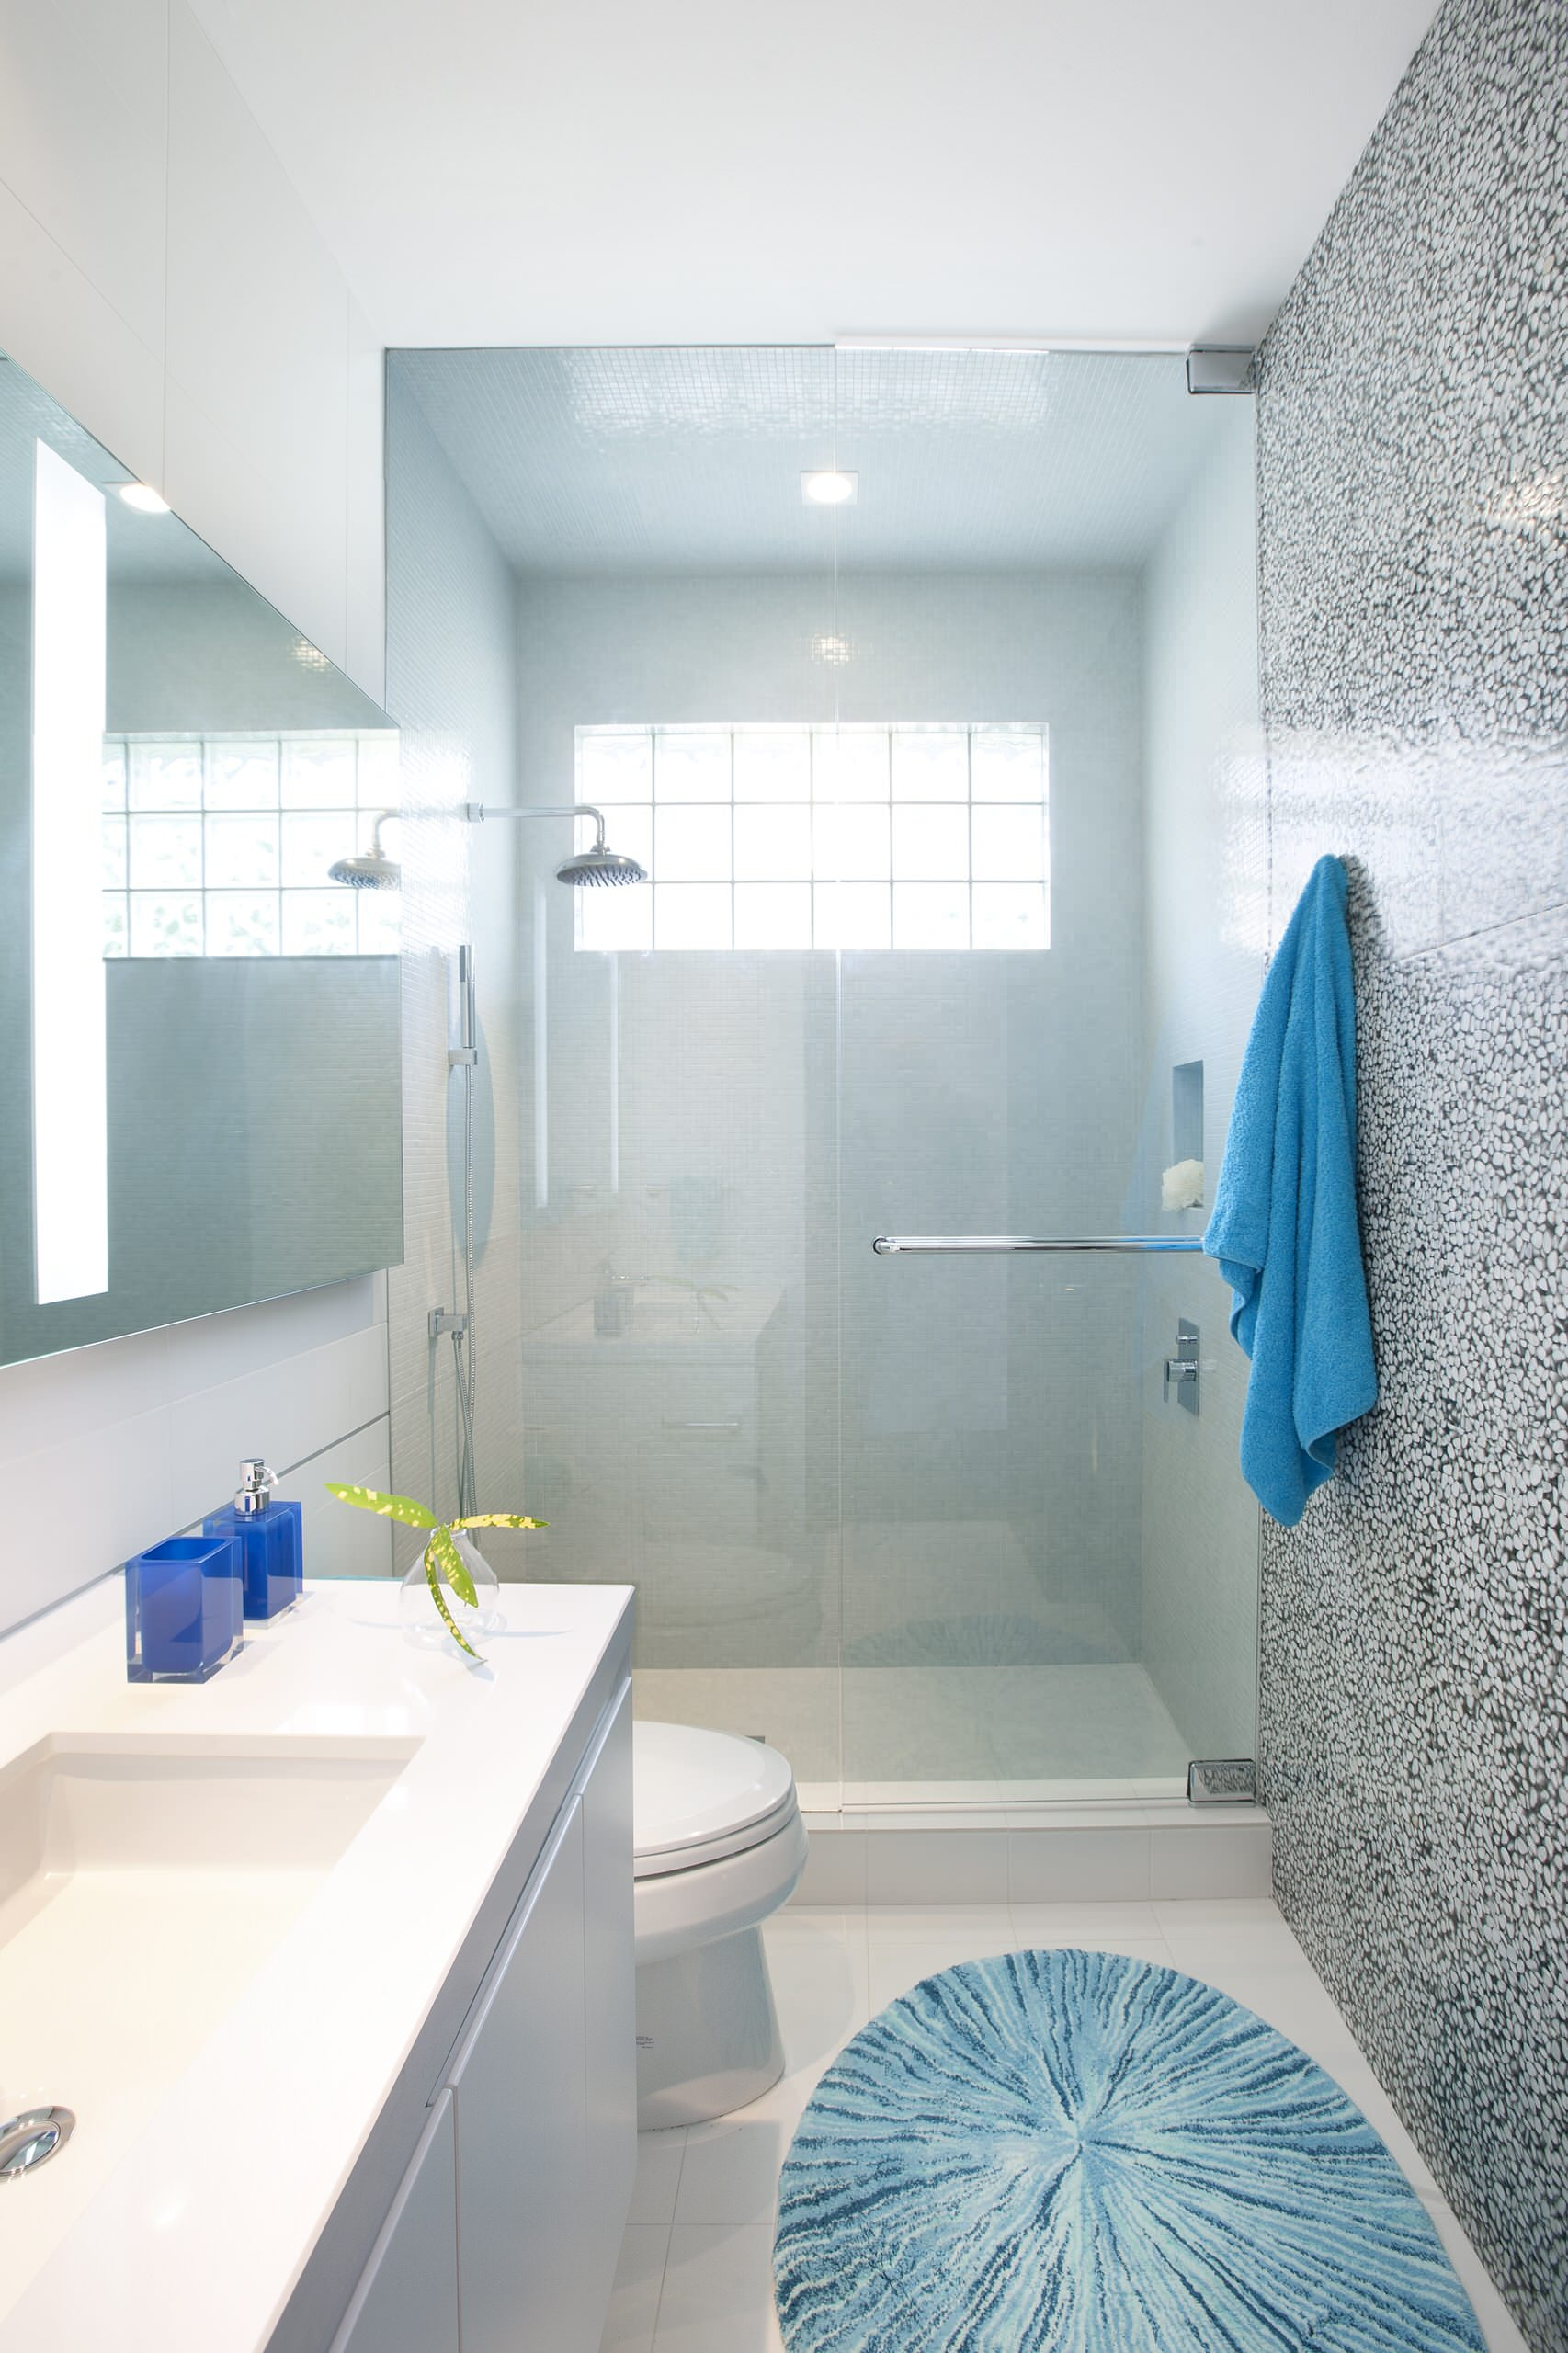 Architecture For Contemporary Bathroom Plus Bathroom Vanity And Glass Shower Enclosures Also Contemporary Designers With Glass Shower Doors And Rain Showerhead Plus Tile Wall Also Wall Mirror